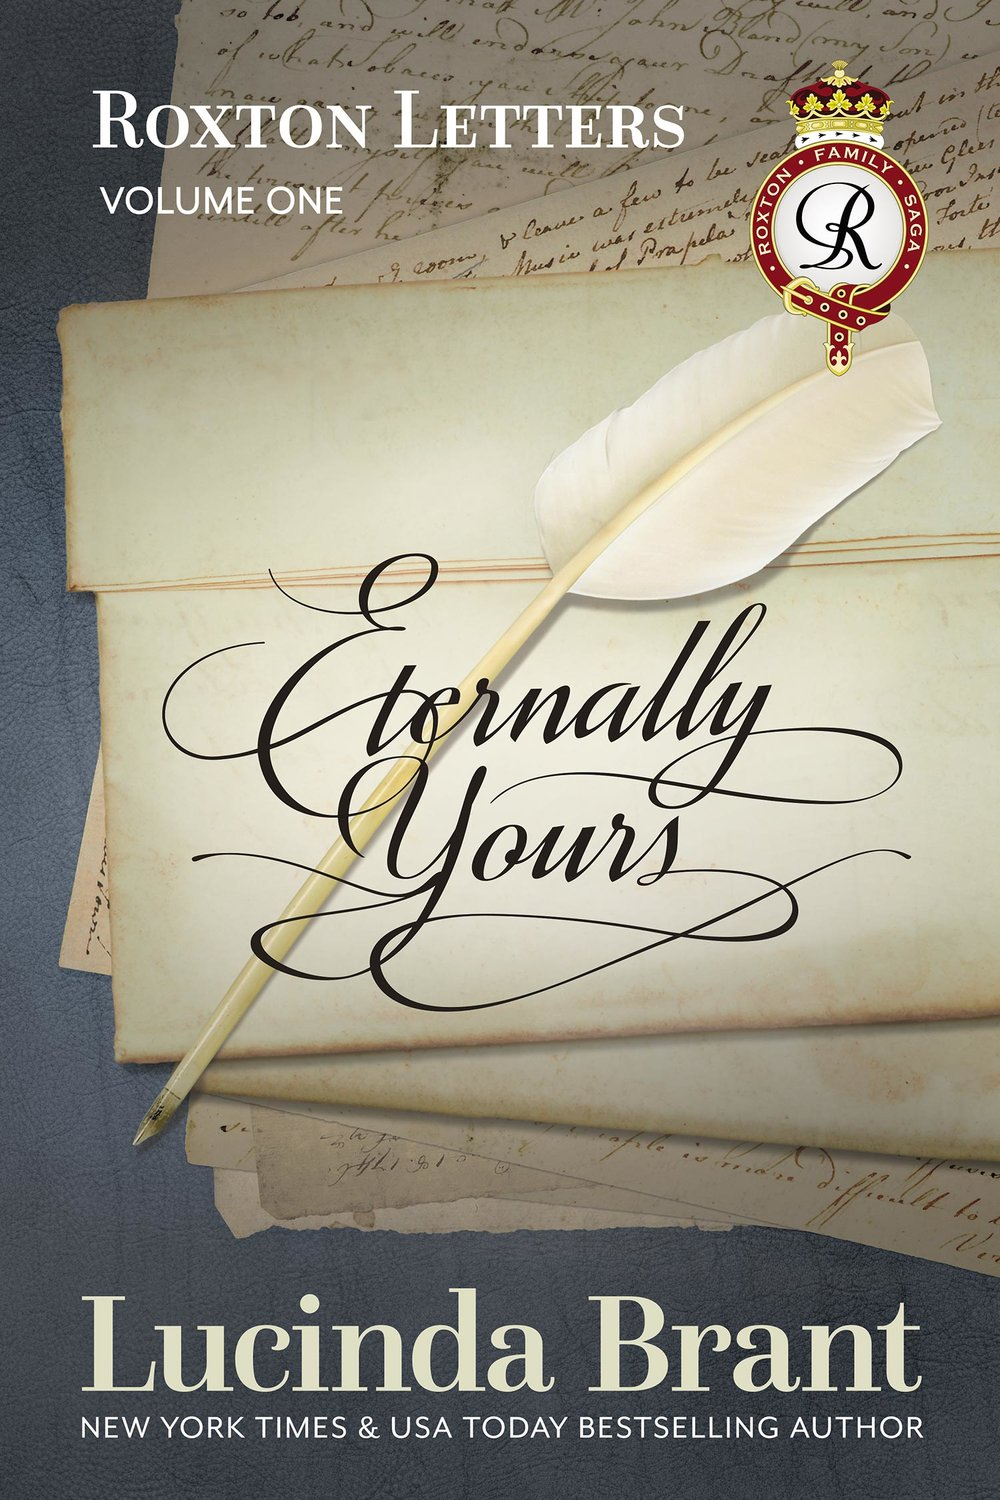 Eternally Yours—Roxton Letters Vol. 1—A Companion to the Roxton Family Saga Books 1-3 by Lucinda Brant